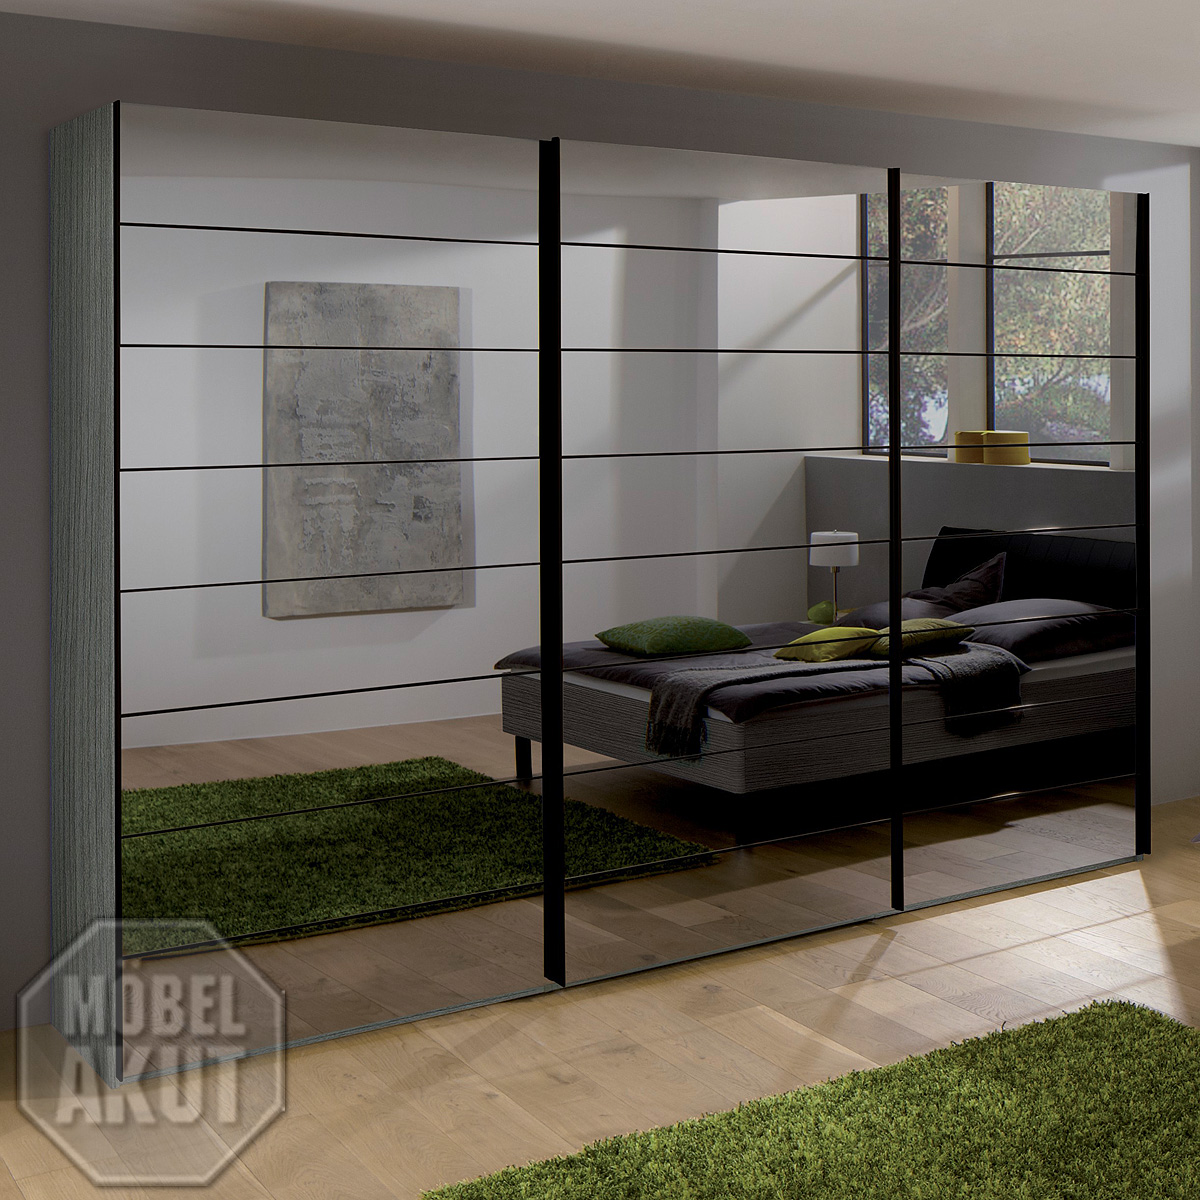 kleiderschrank marcato von nolte silbereiche spiegel b 300 ebay. Black Bedroom Furniture Sets. Home Design Ideas